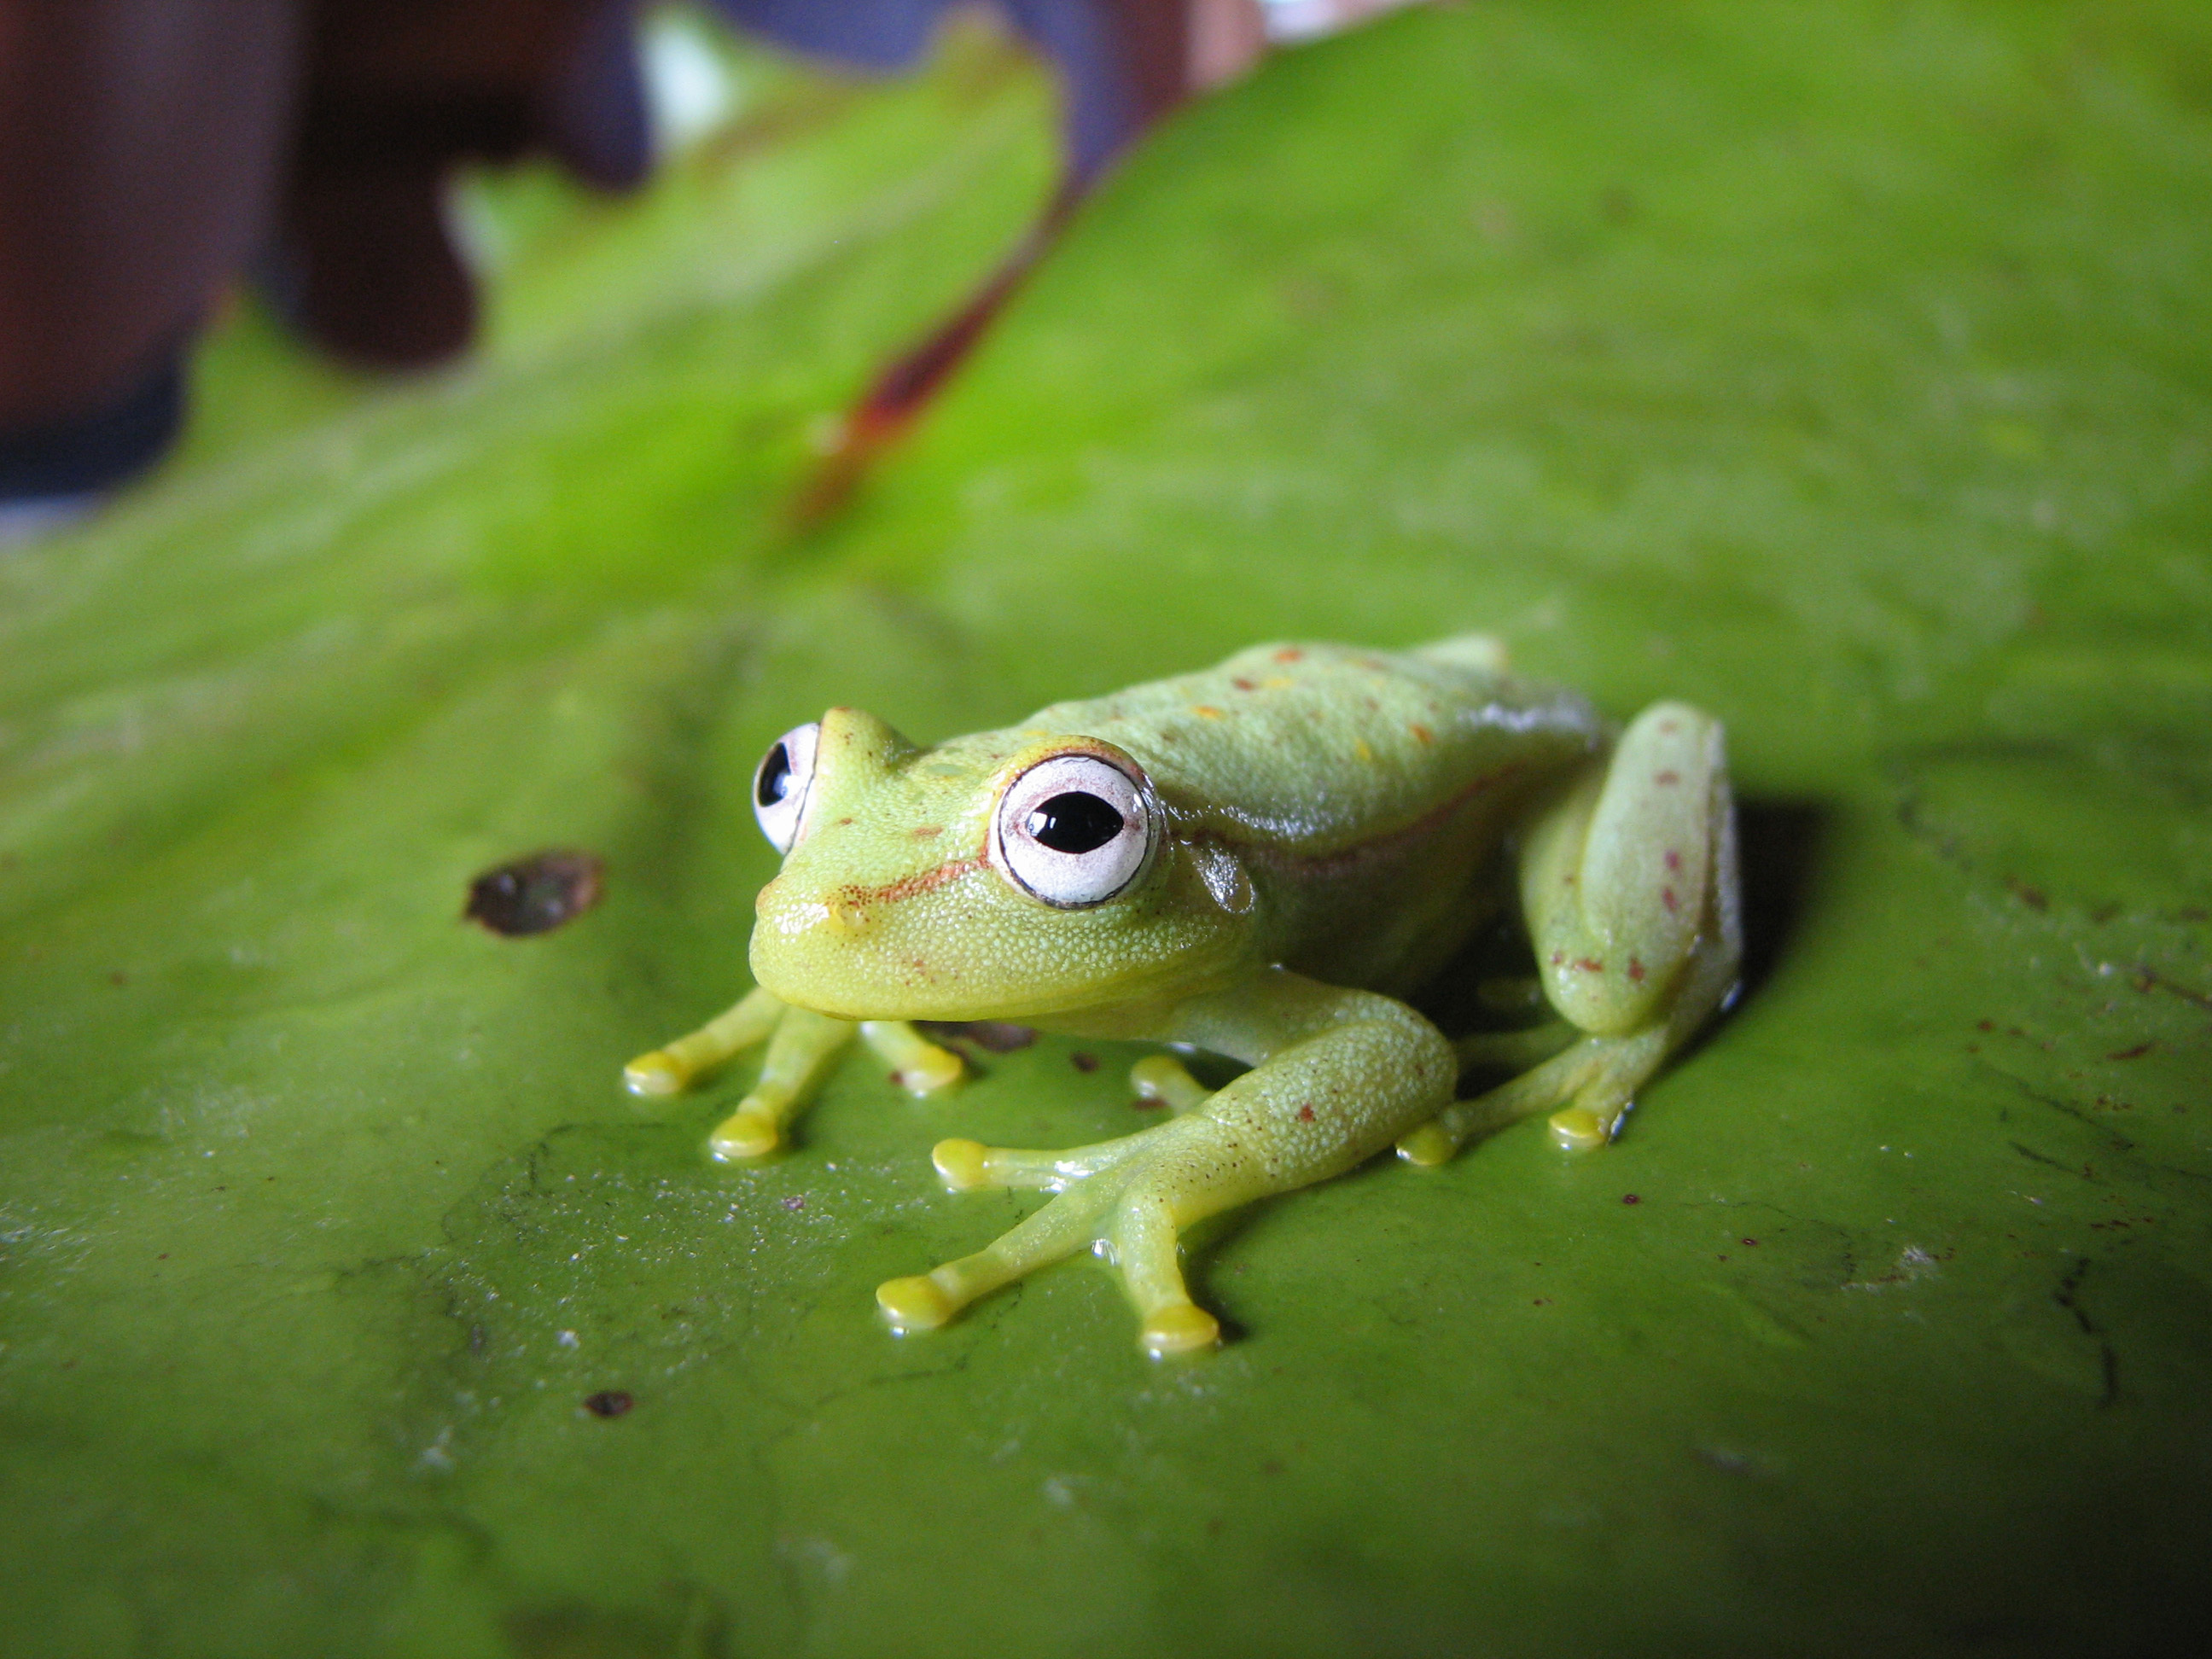 spotted emerald glass frog with green skin and big eyes, sitting on a leaf in the Brazilian Amazon